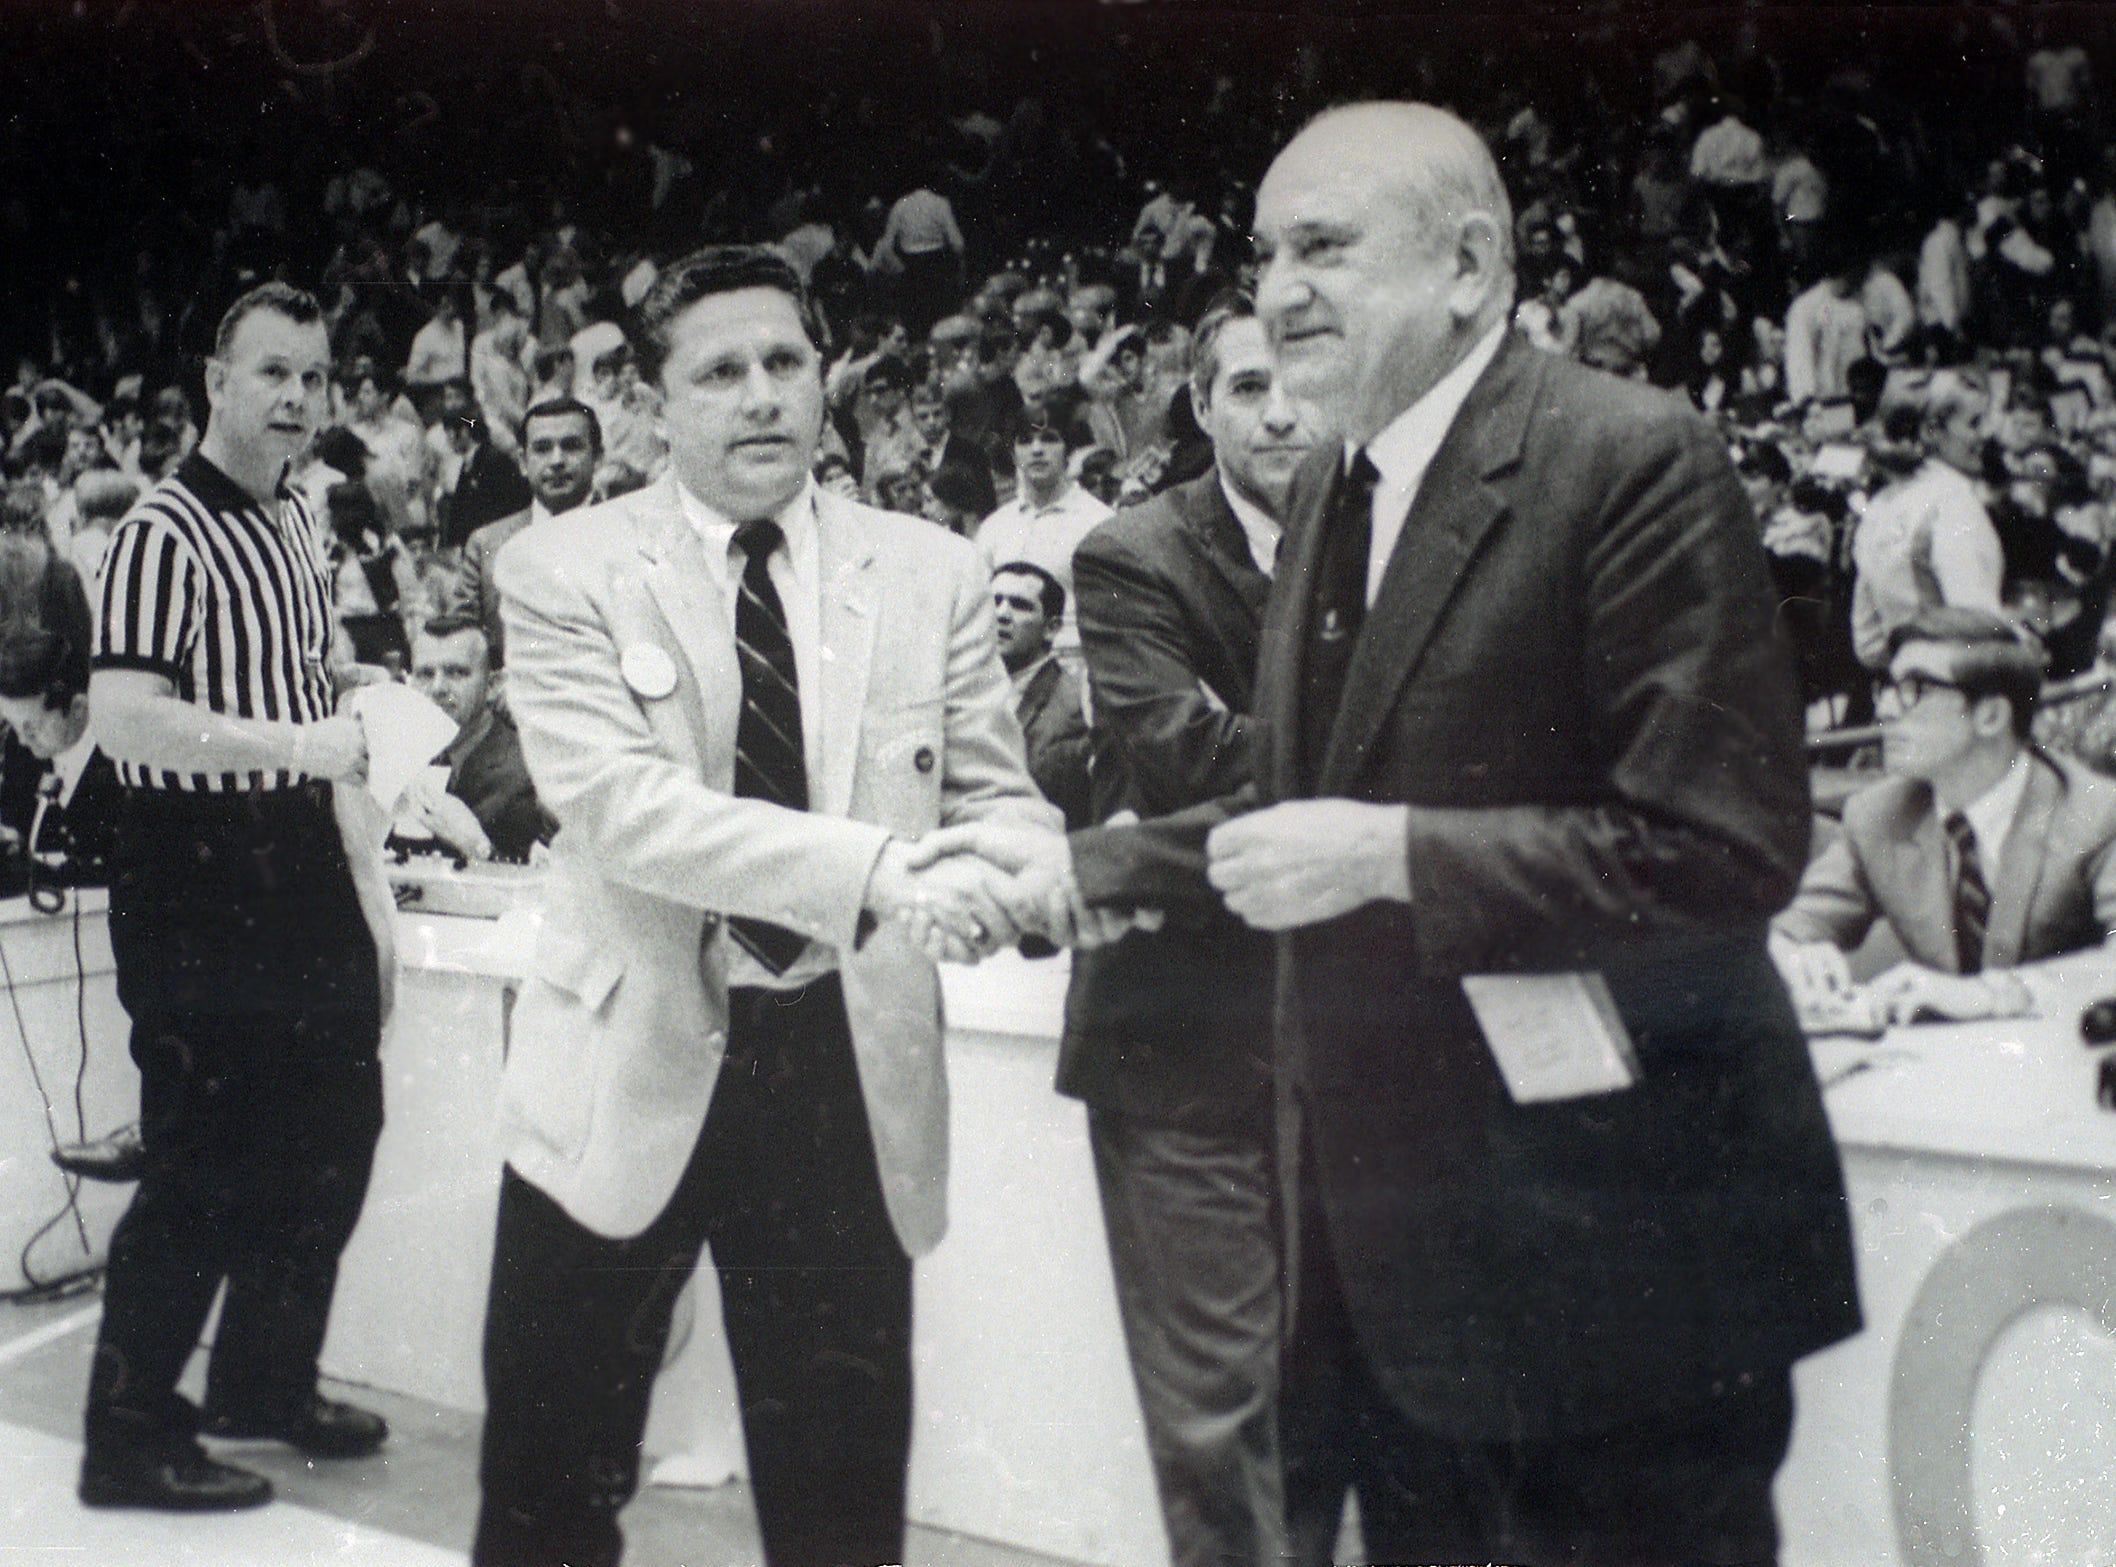 An undated photograph of University of Tennessee basketball Coach Ray Mears, left, with University of Kentucky Coach Adolph Rupp.